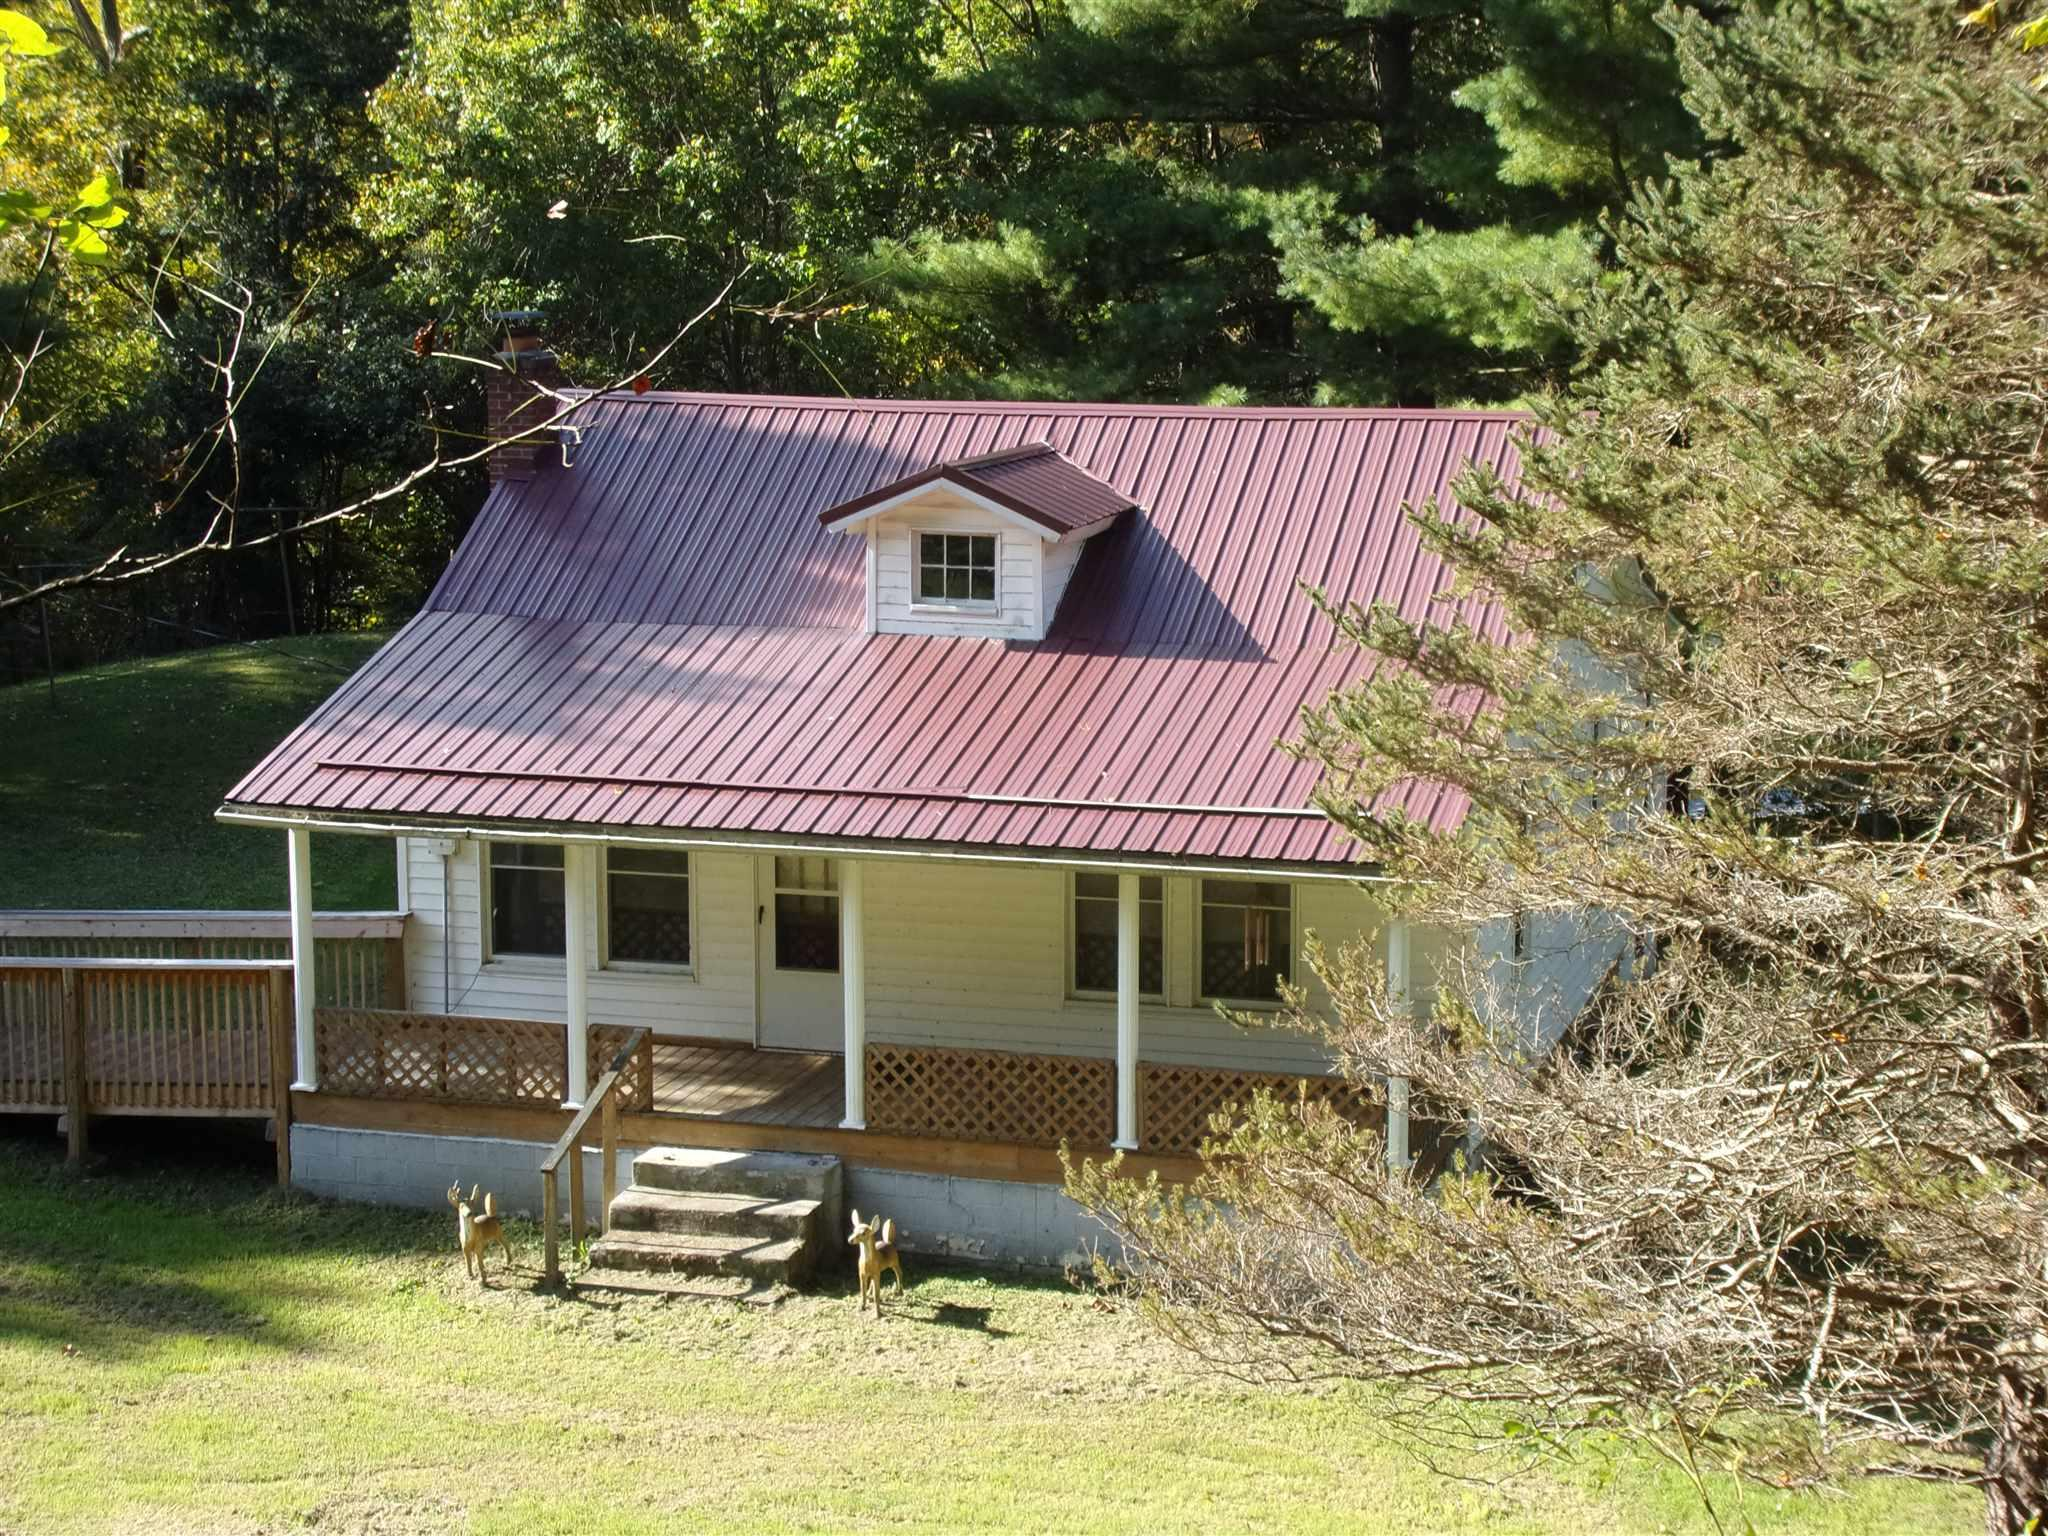 Lovely older home with some updates & lots of Country Charm! Setting on 3ac just out side of town limits, Home has newer HP, Metal Roof, beautiful natural wide base board trim, Updated Electric box & windows large front porch. A Must See!